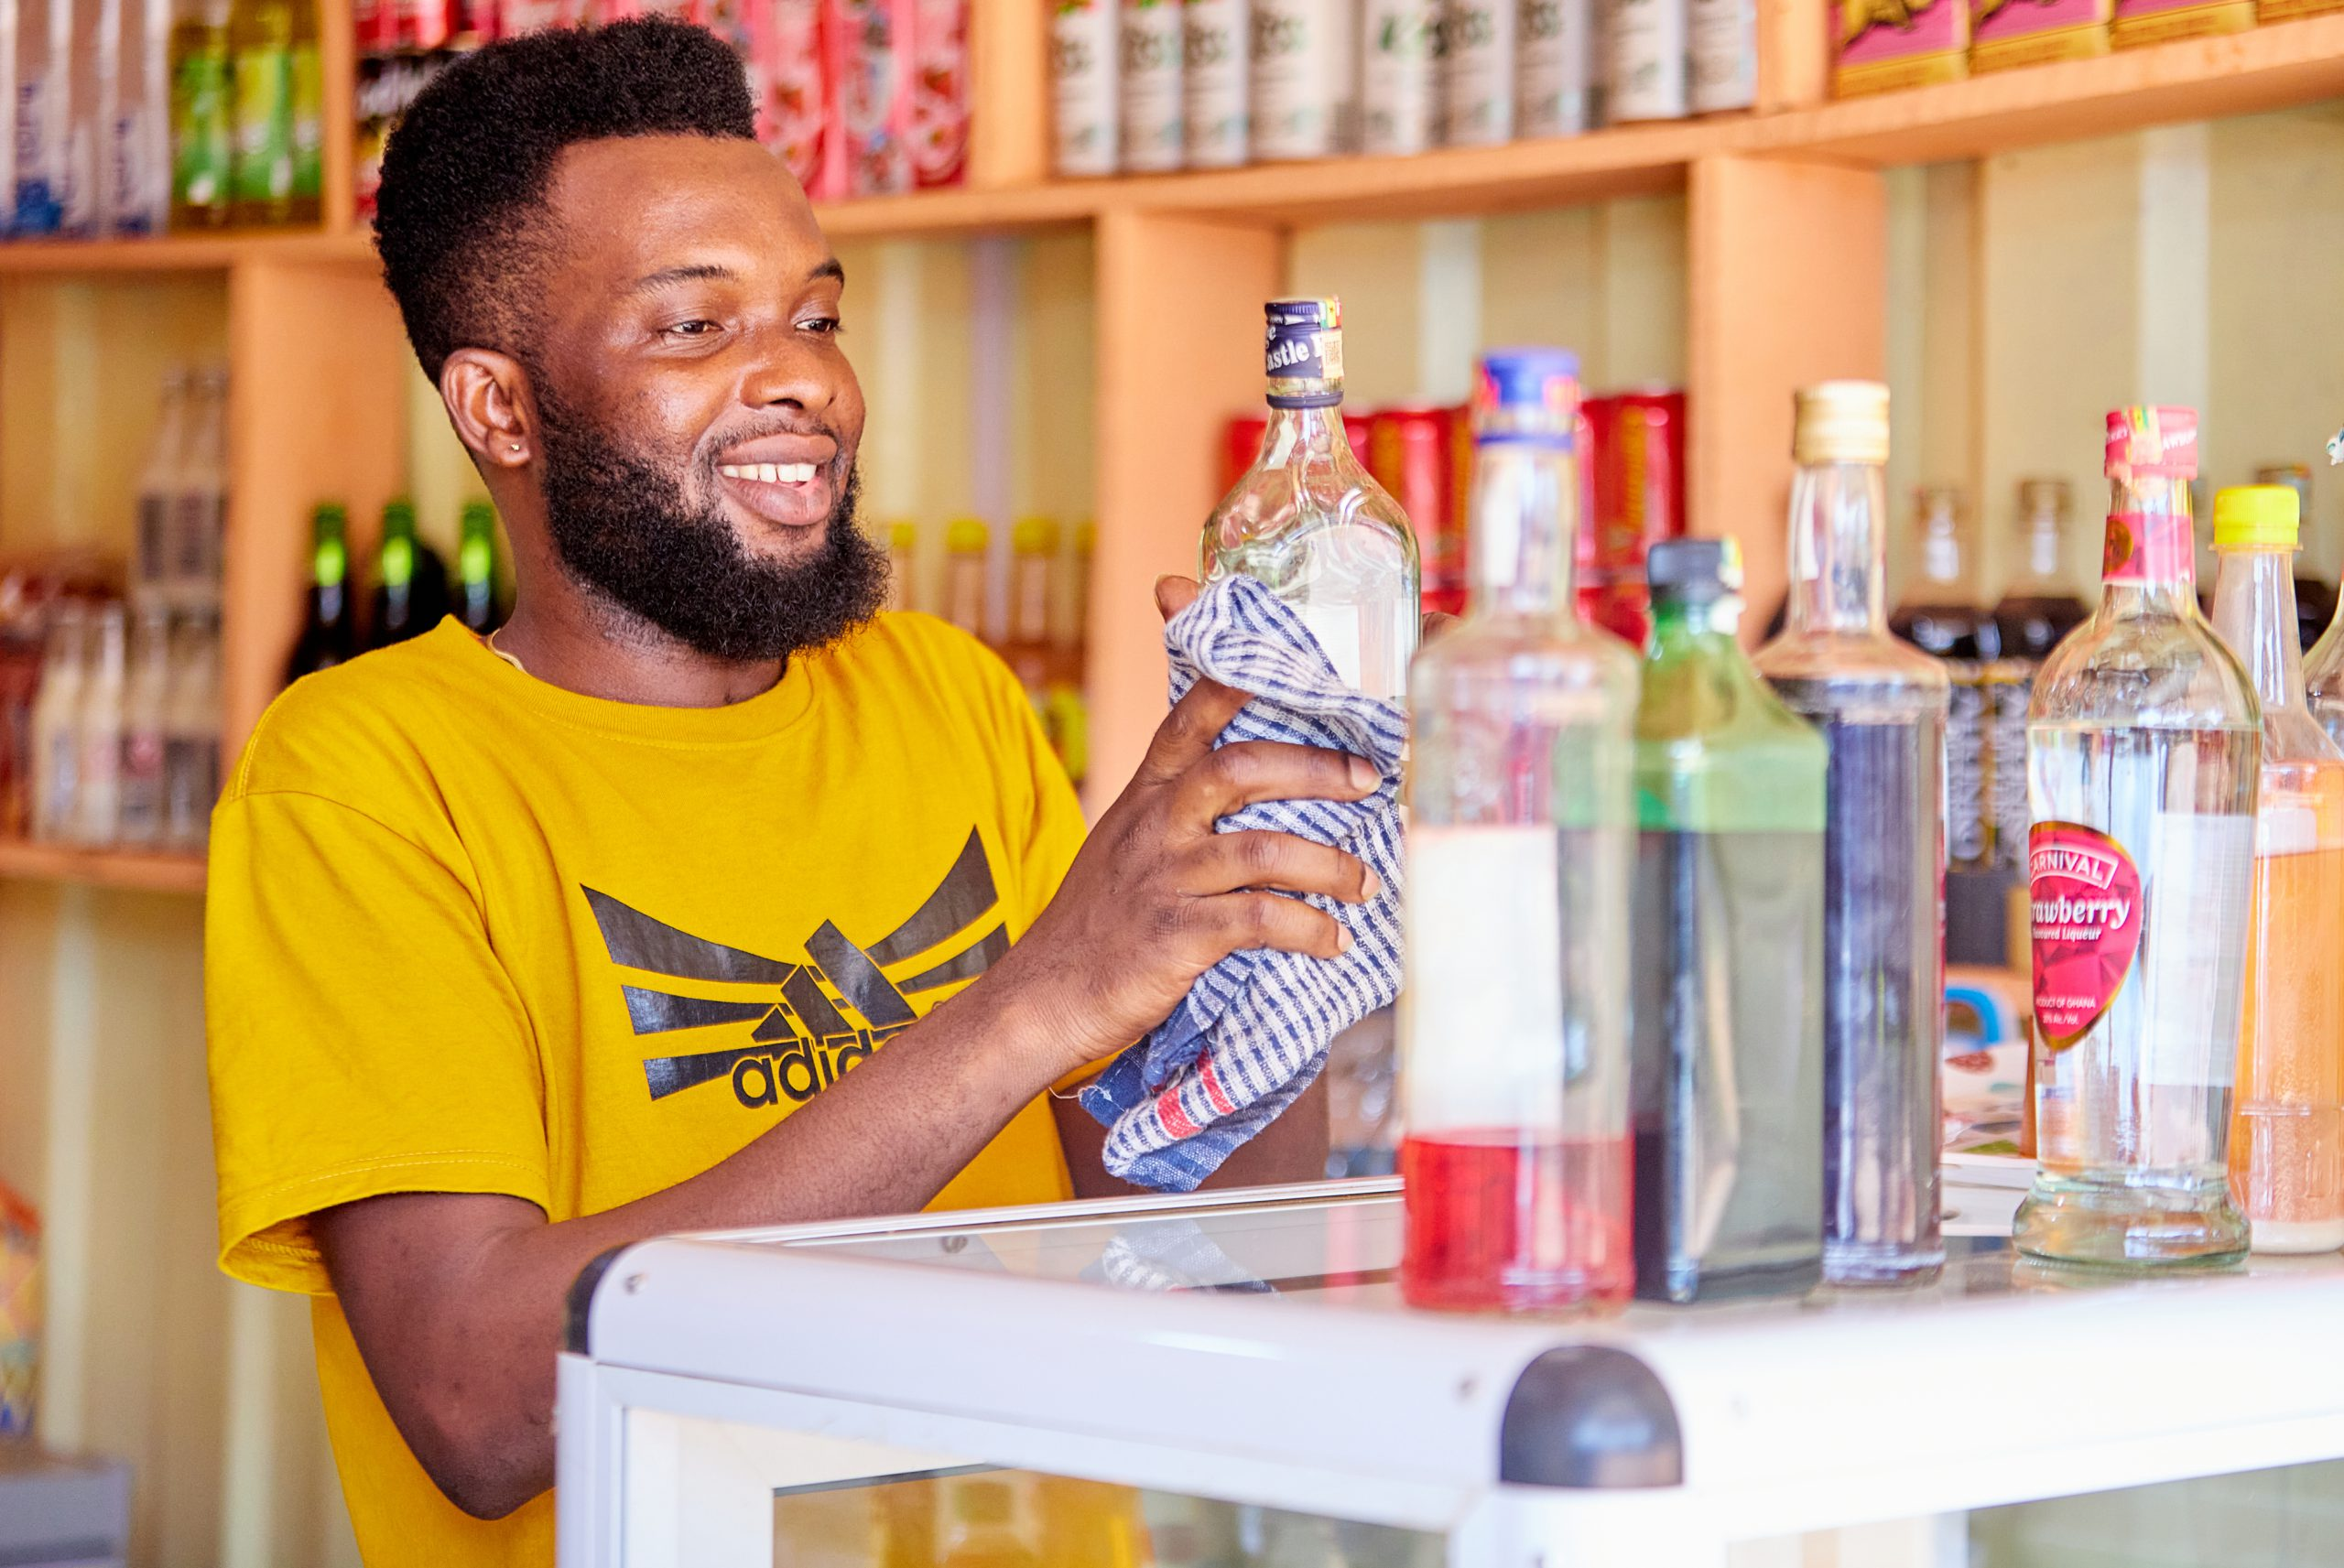 A Ghanaian man holding a glass bottle in his pub.